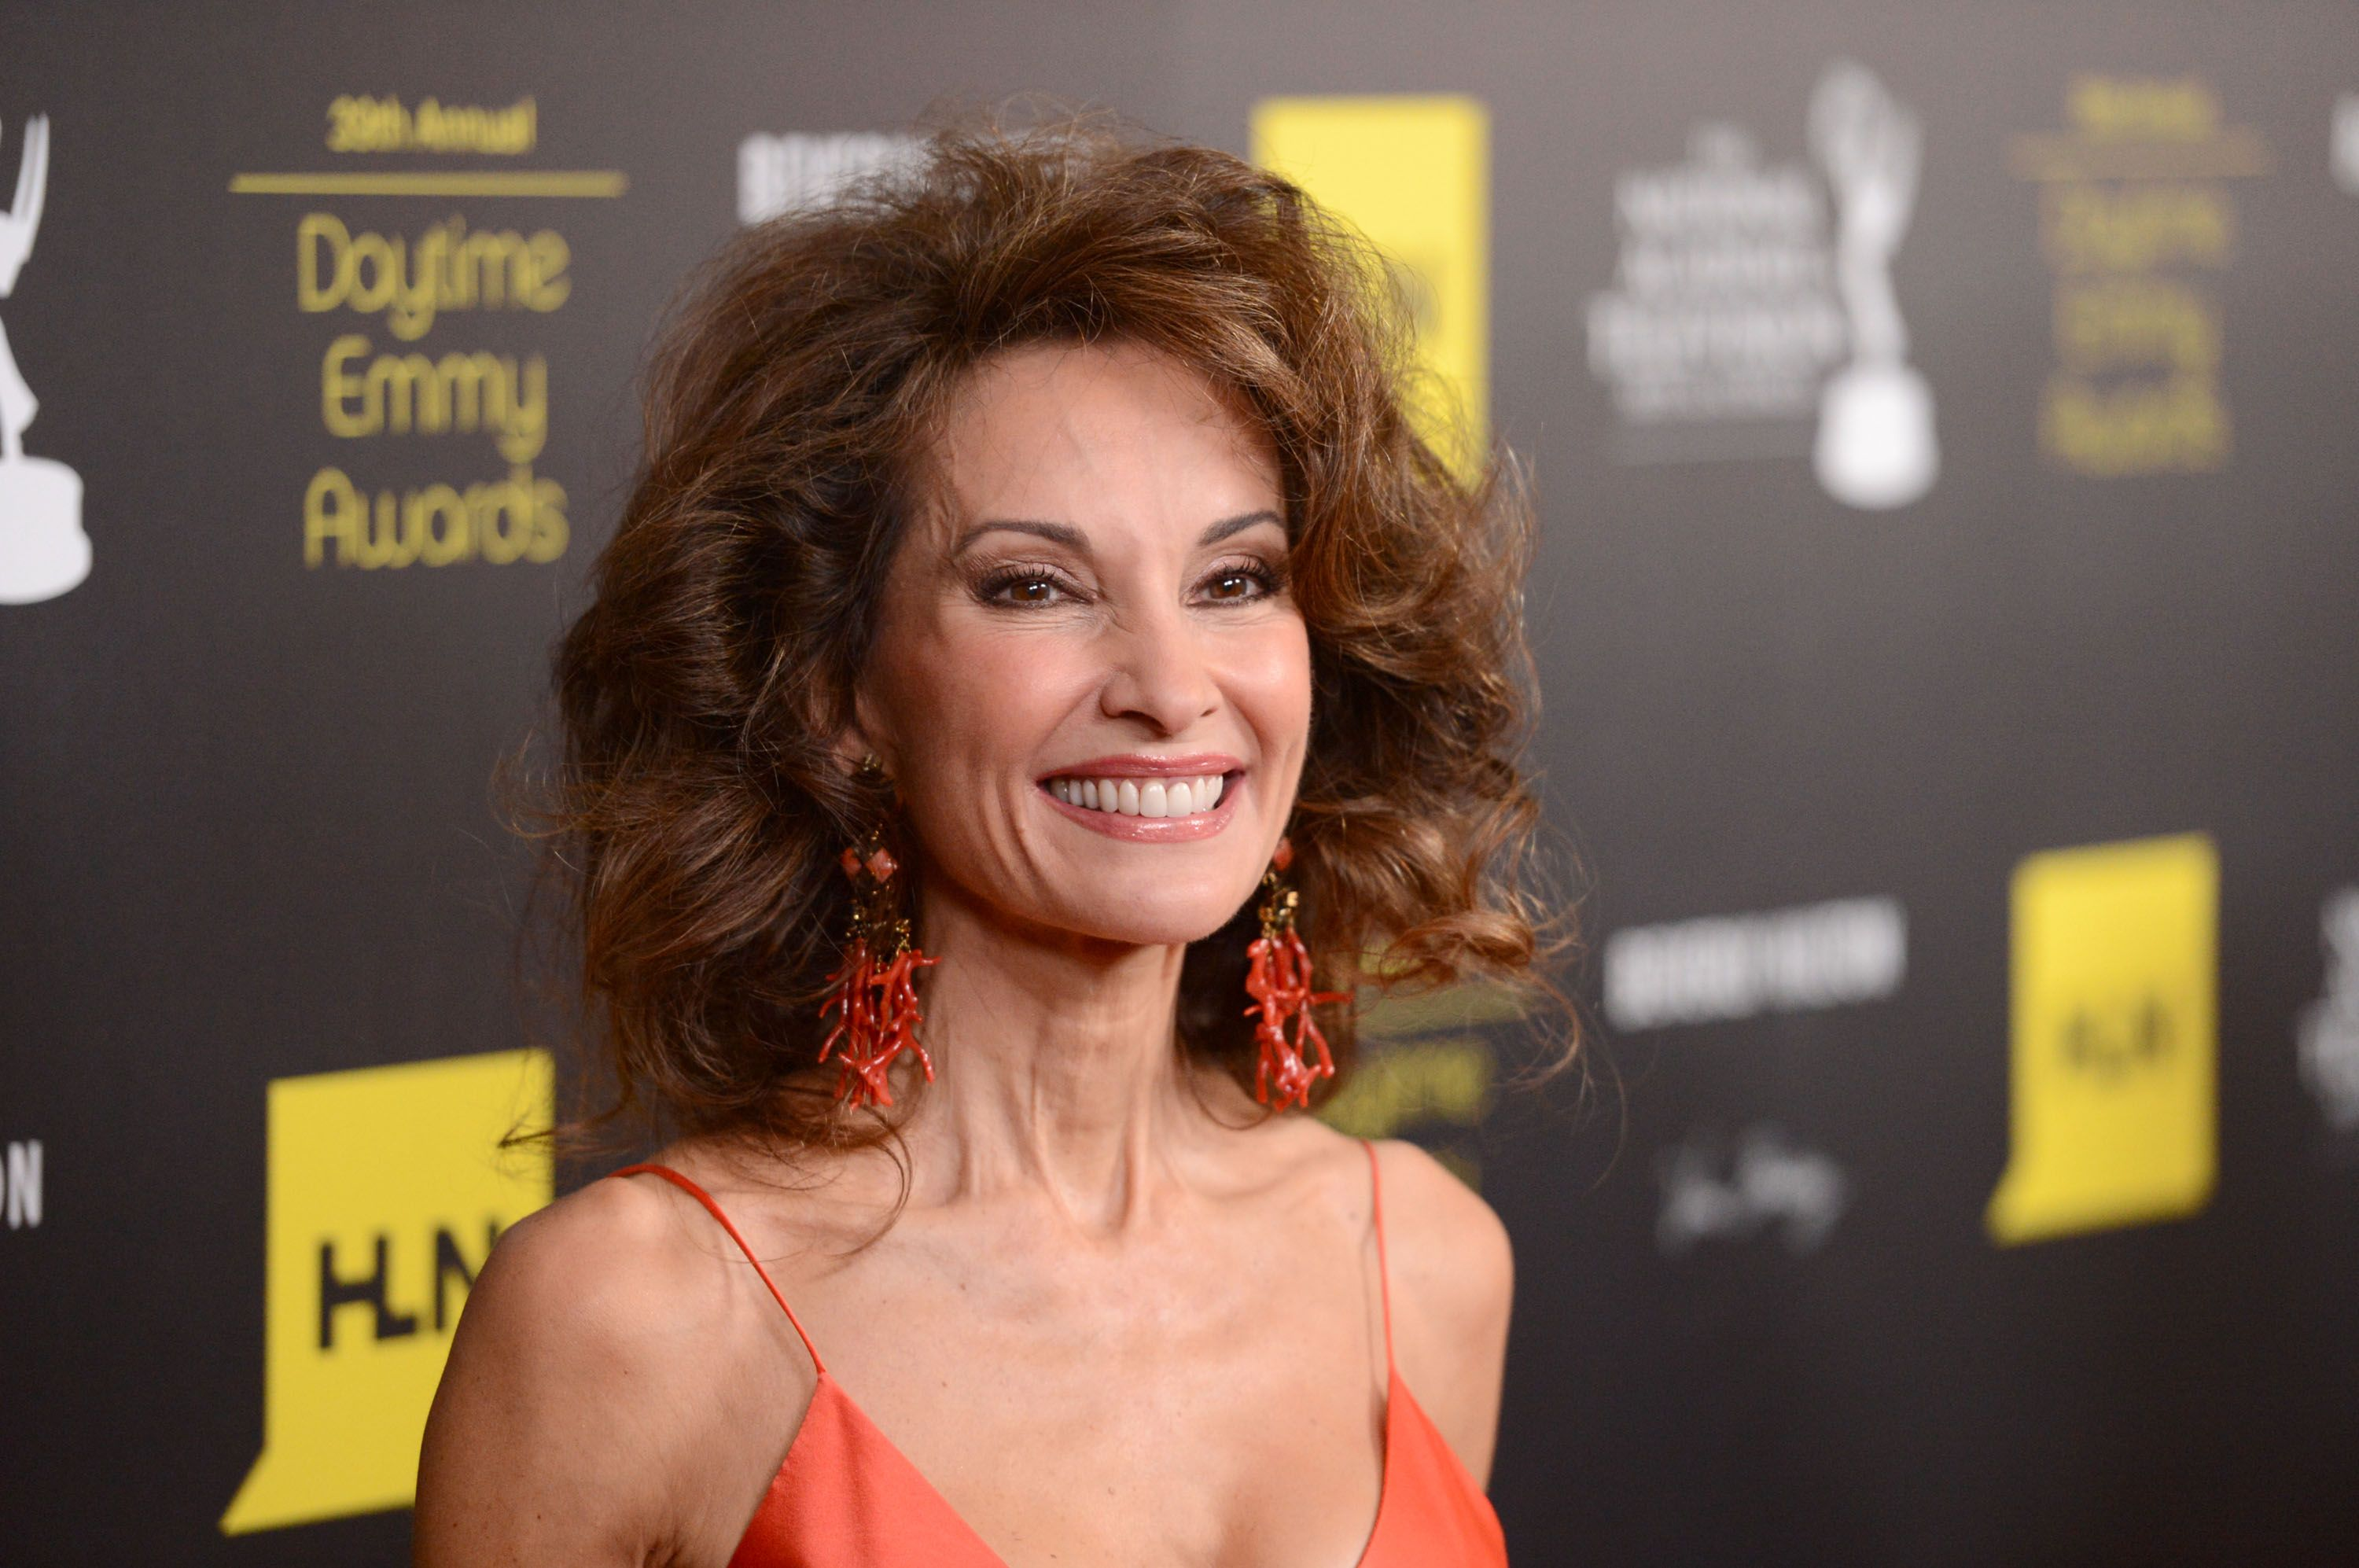 Susan Lucci arrives at The 39th Annual Daytime Emmy Awards broadcasted on HLN held at The Beverly Hilton Hotel on June 23, 2012 in Beverly Hills, California. | Source: Getty Images